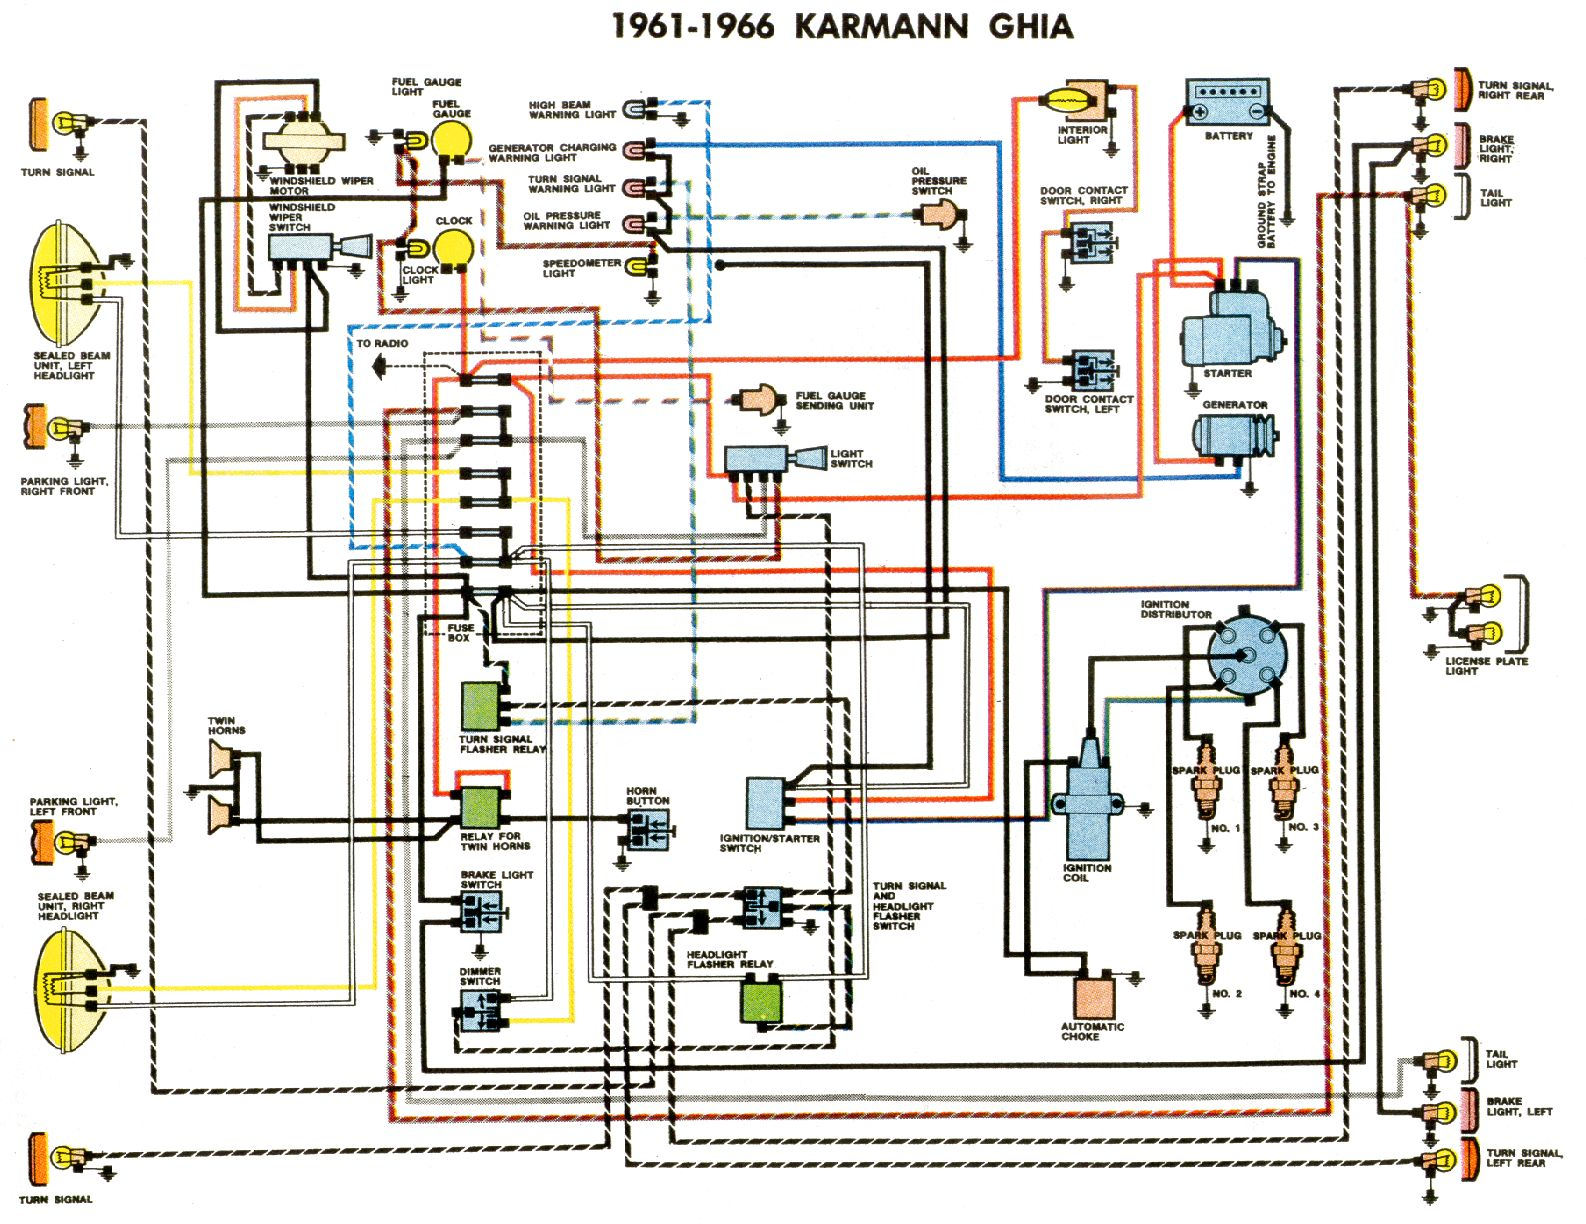 356a Wiring Diagram Most Searched Right Now Simple Dimmer Switch For Electrical Diagrams Thesamba Com Ghia View Topic 12v 66 Wont Start Light